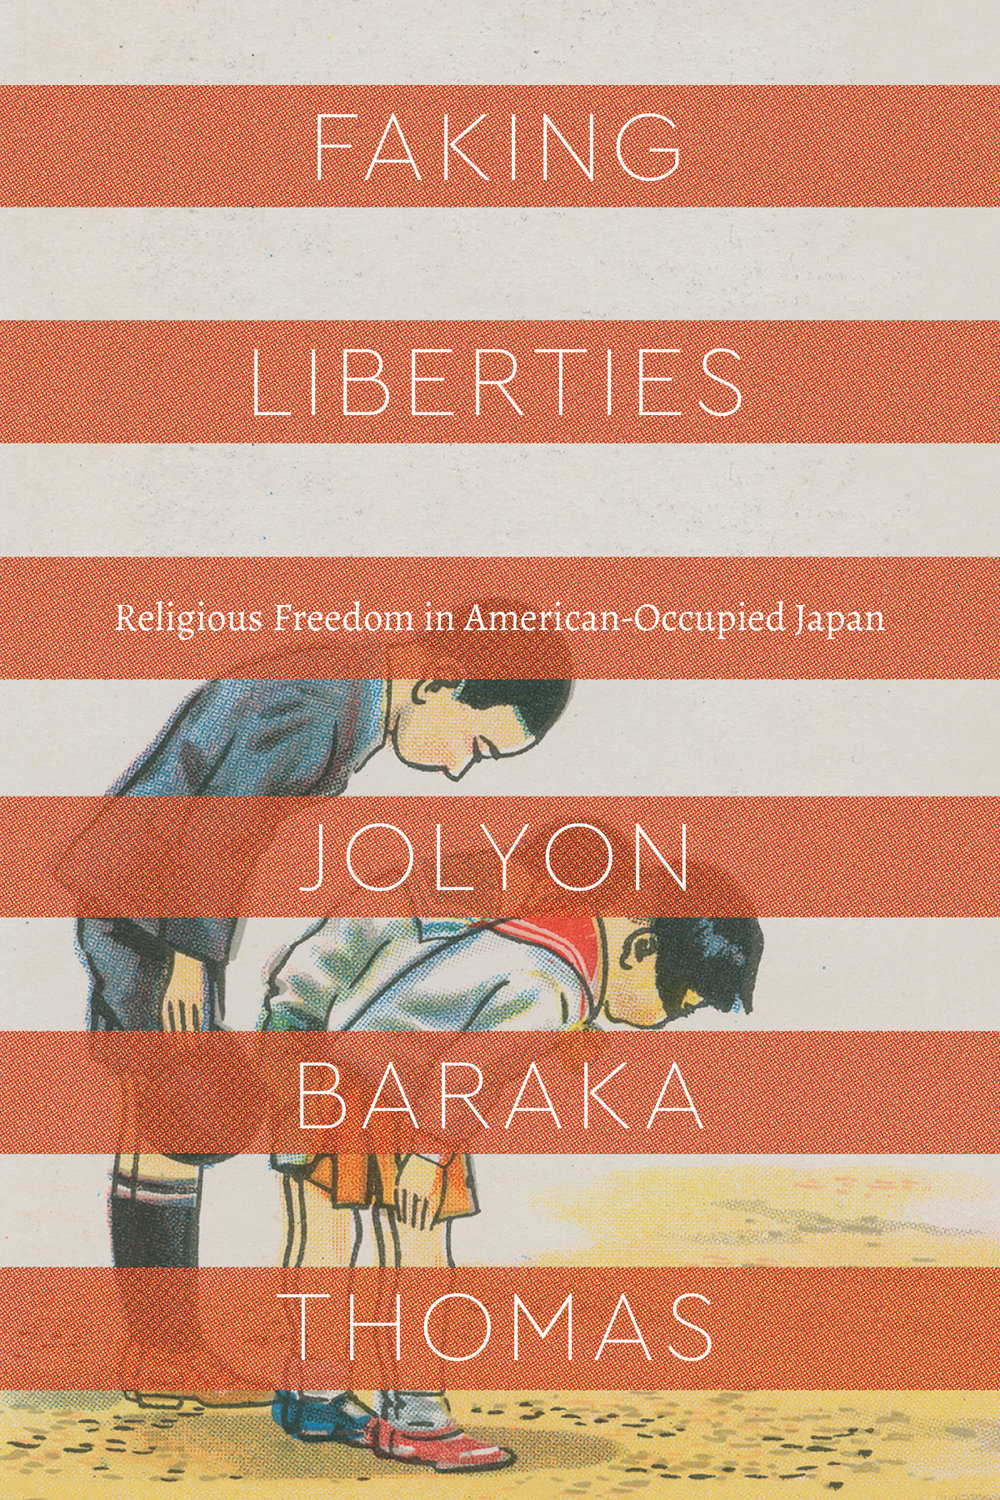 RELIGIOUS FREEDOM - Faking Liberties: Religious Freedom in American-Occupied Japan (University of Chicago Press, 2019)